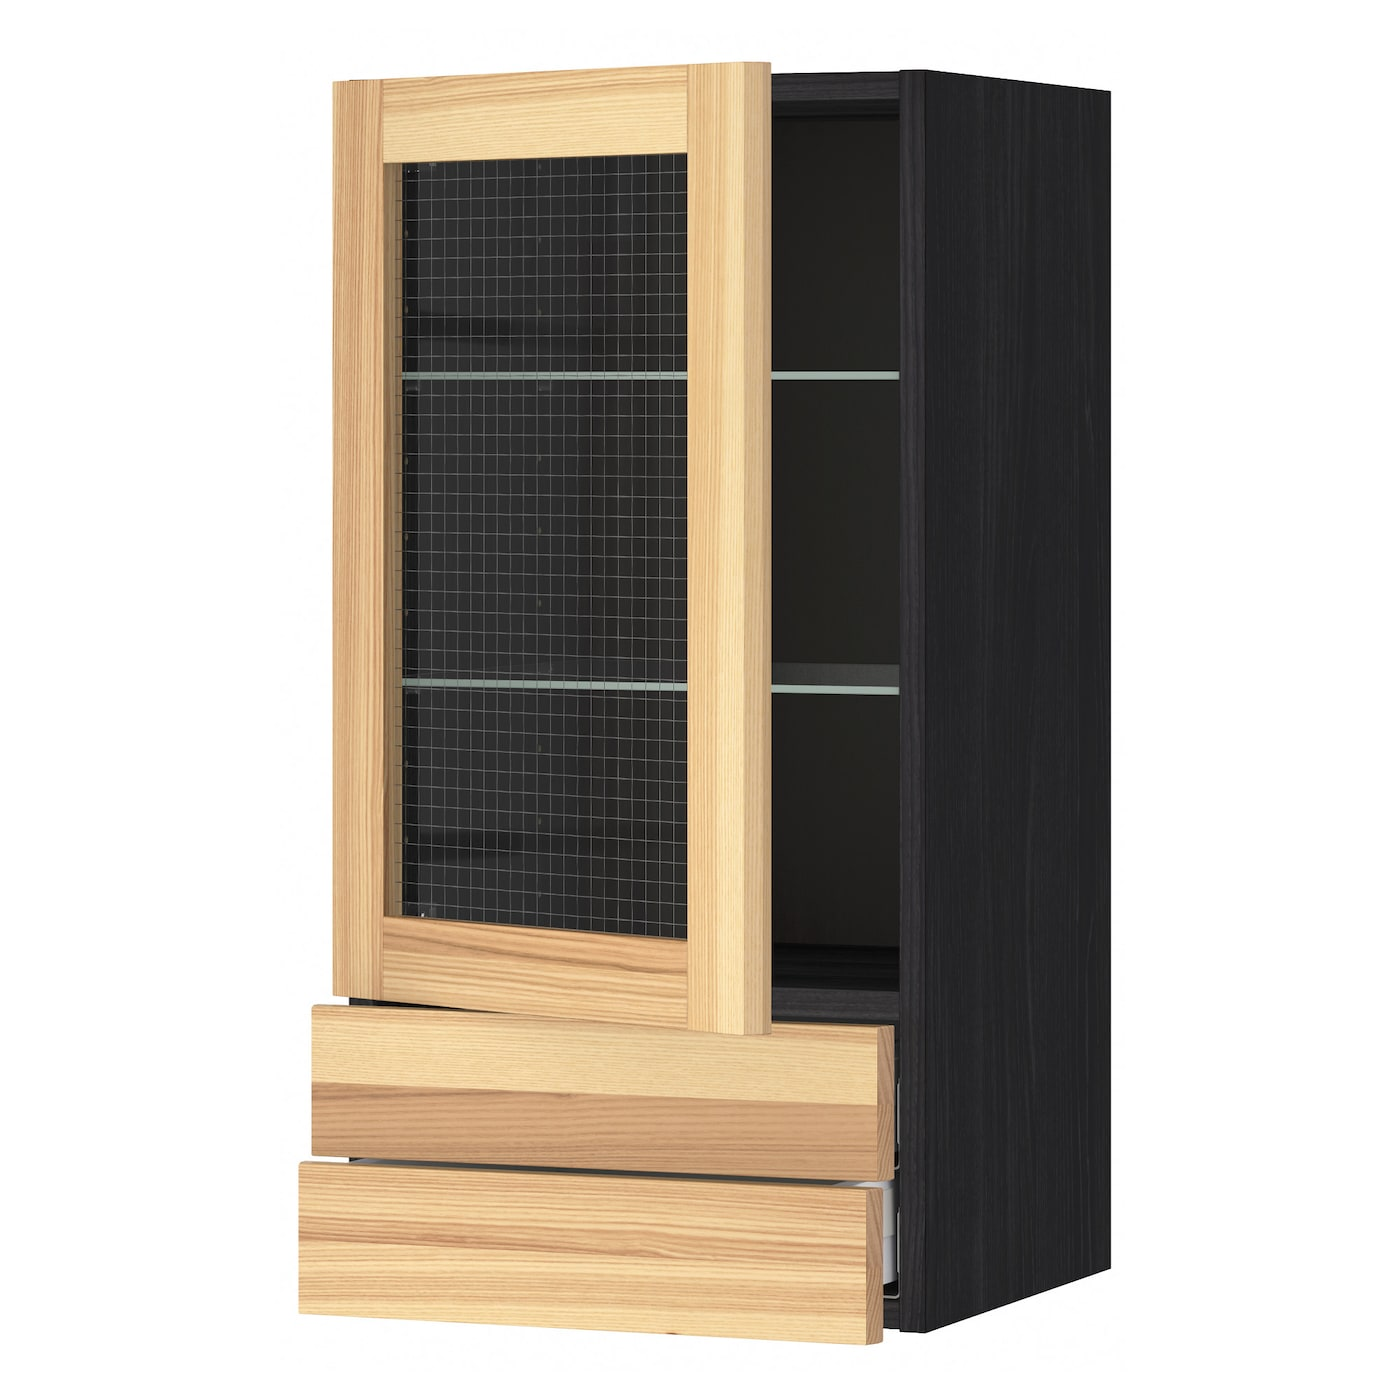 IKEA METOD/MAXIMERA wall cabinet w glass door/2 drawers Sturdy frame construction, 18 mm thick.